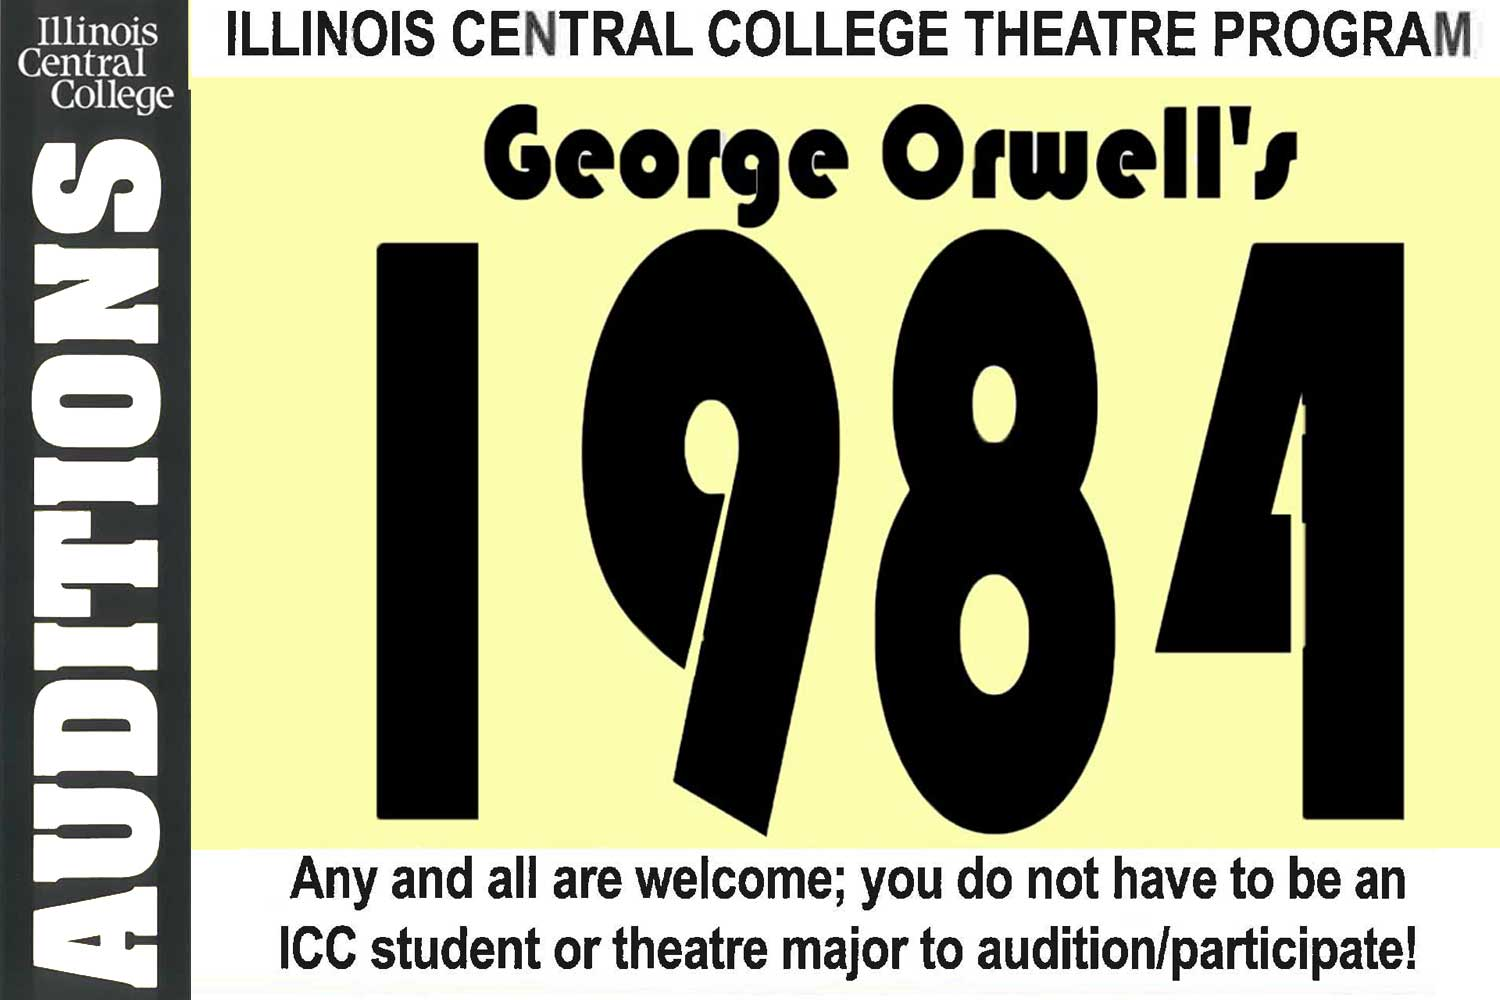 Auditions for George Orwell's